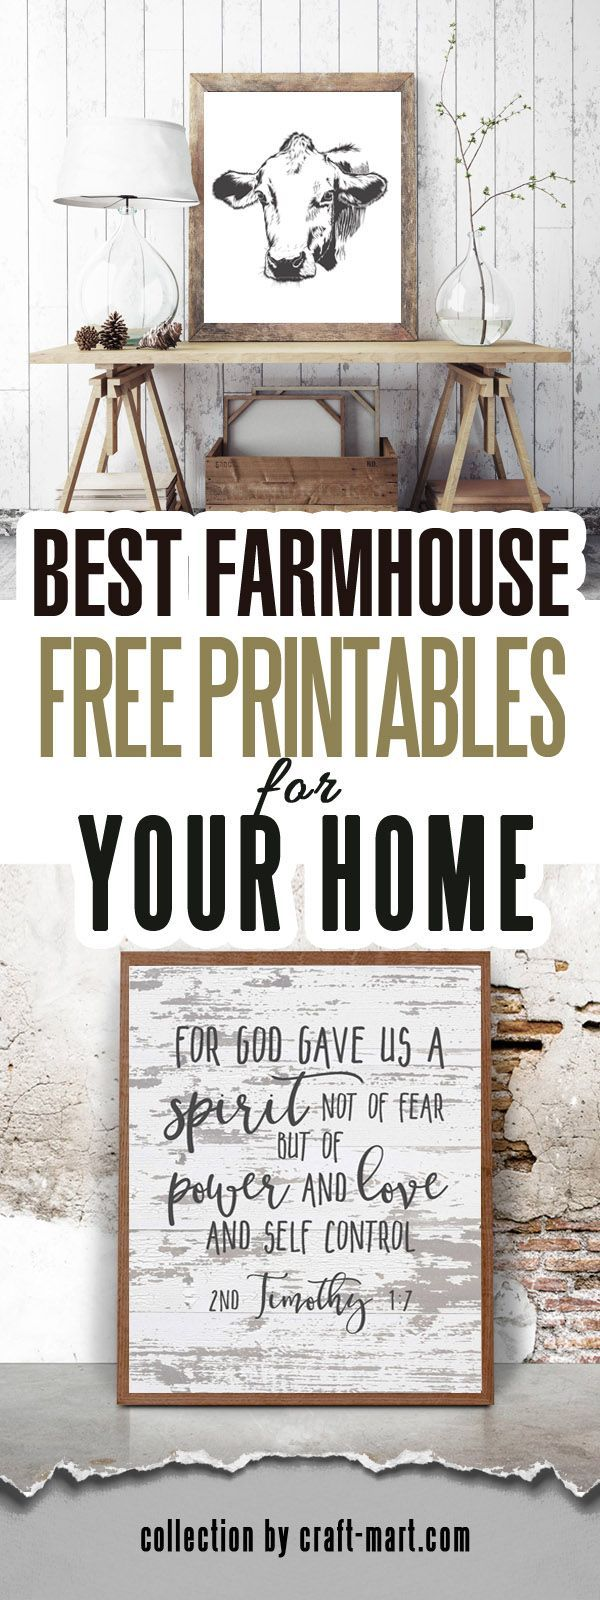 Photo of 100 Best FREE Farmhouse Printables